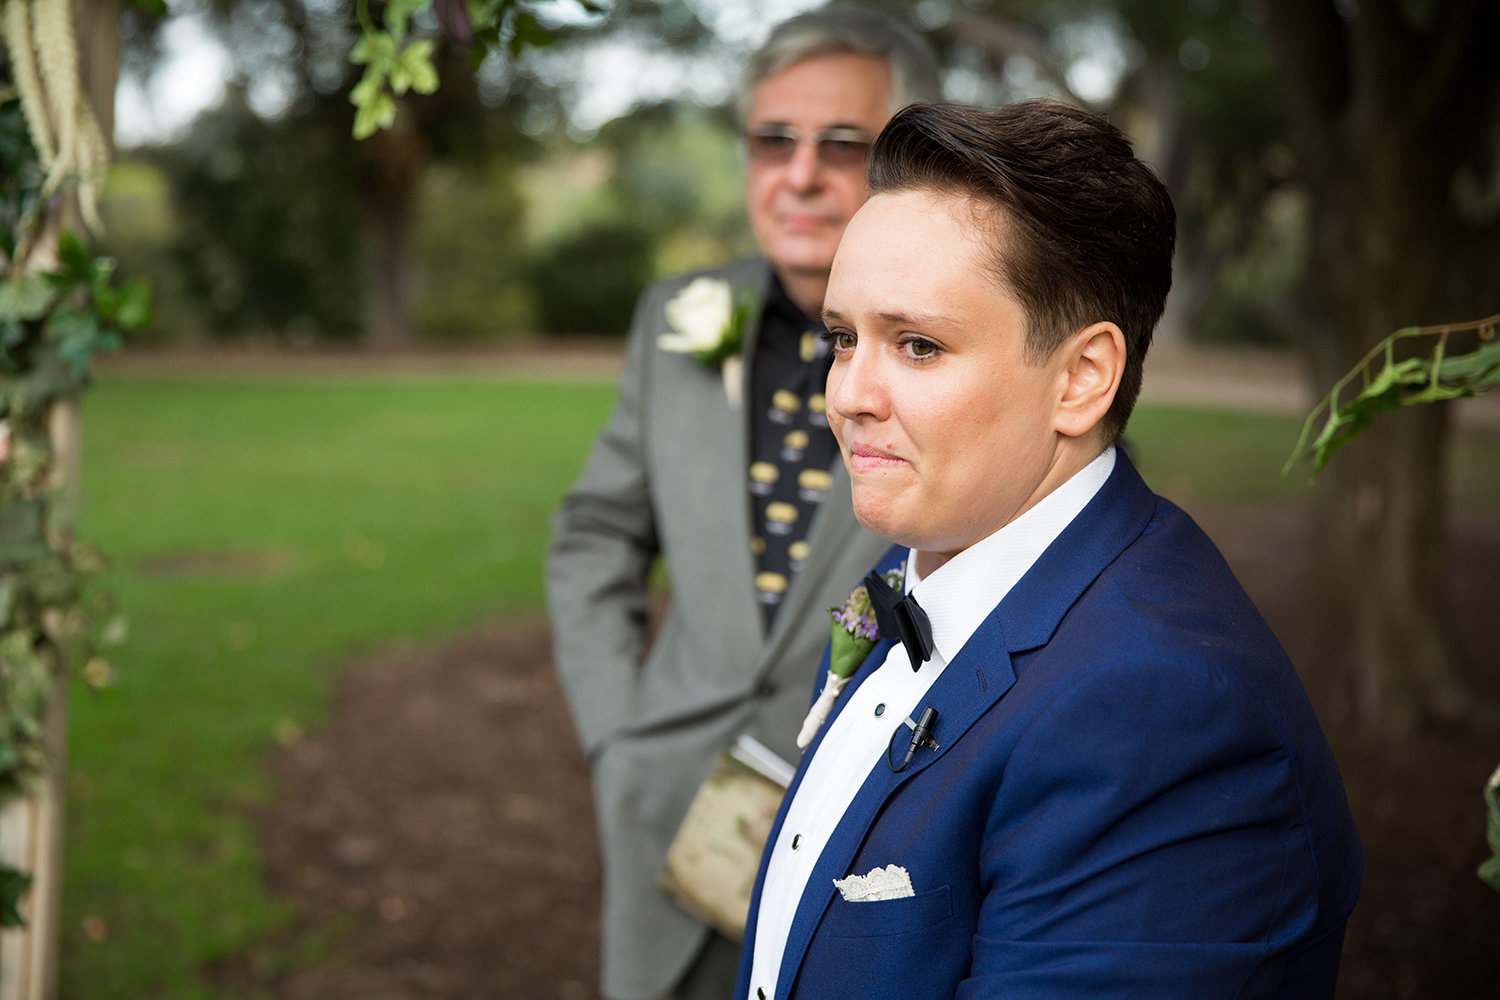 Can't help but react when you see your bride coming down the aisle | LGBT wedding ceremony